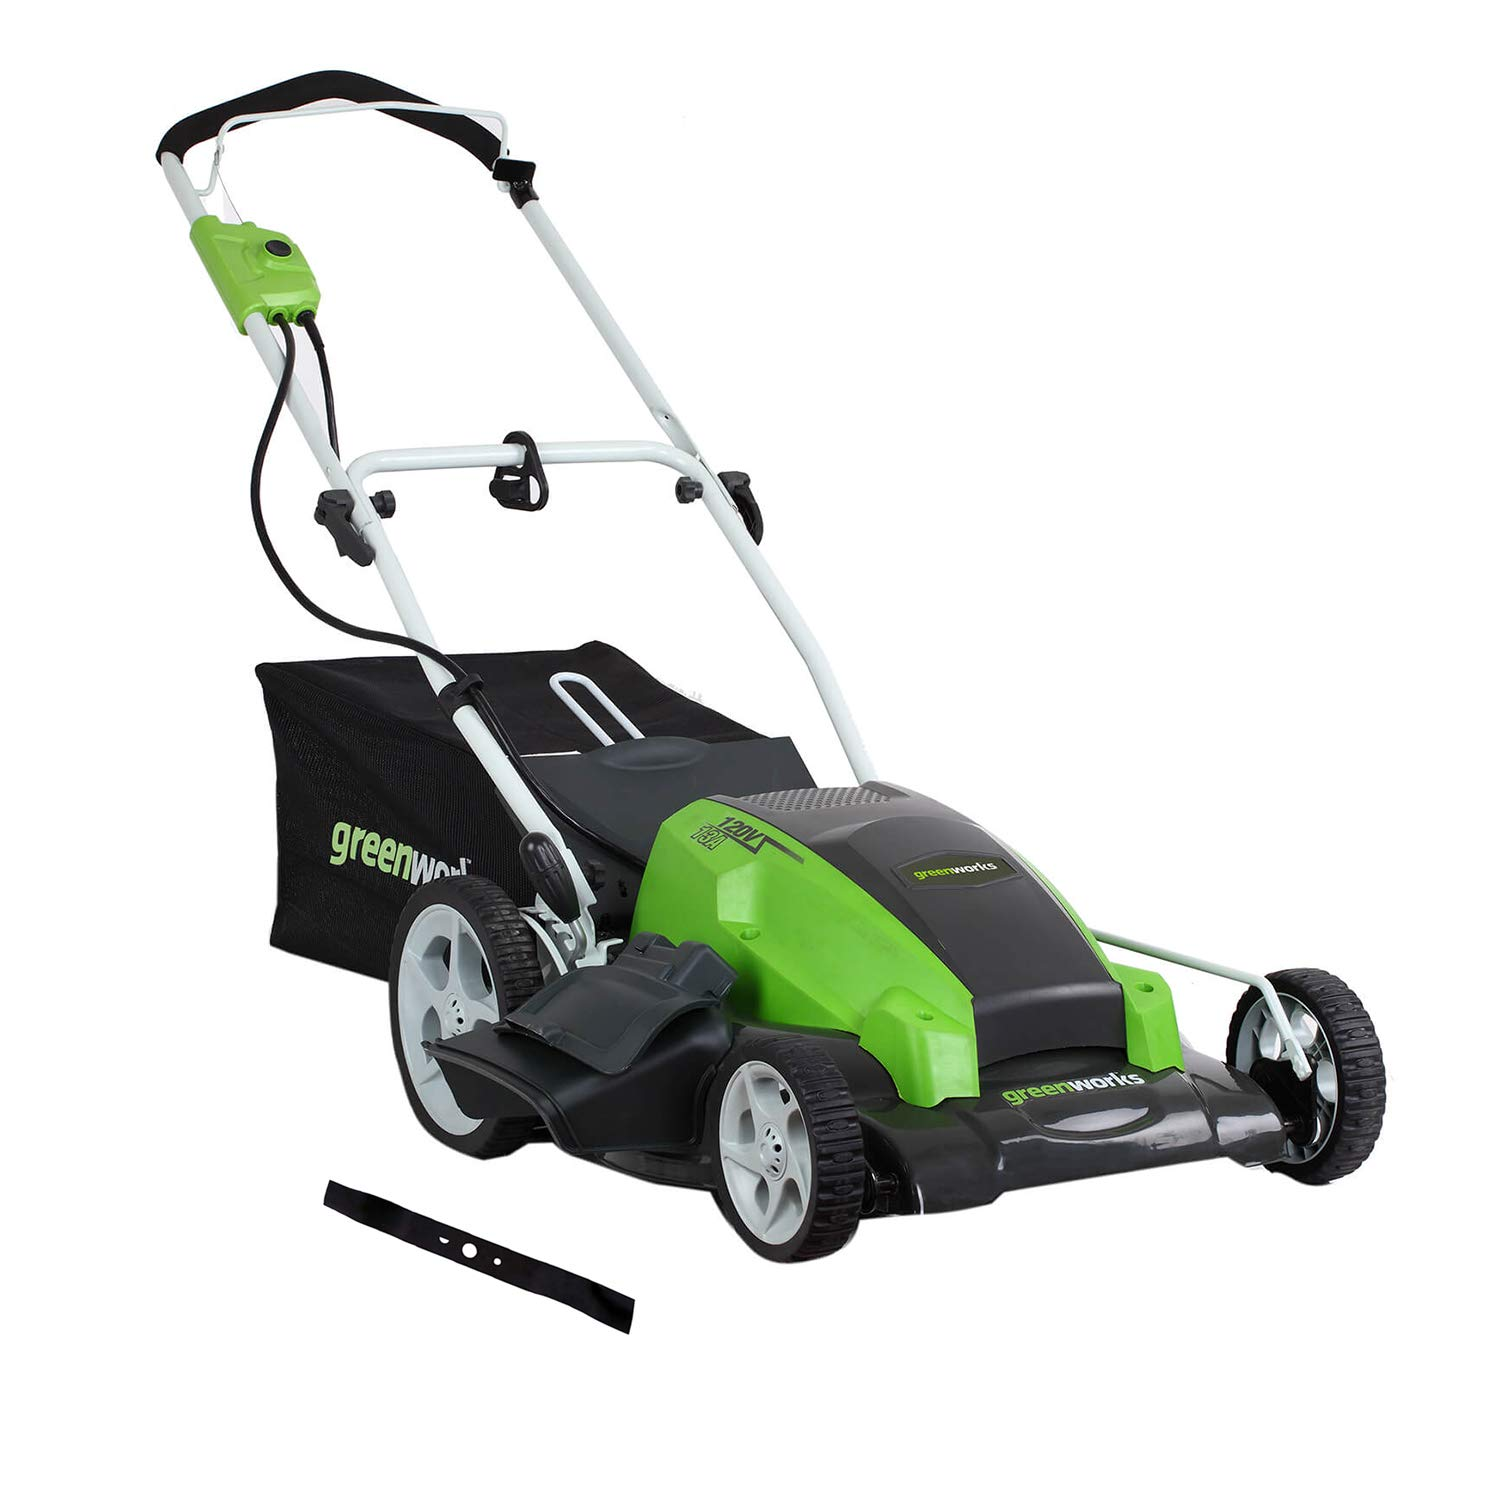 Greenworks 21-Inch 13 Amp Corded Electric Lawn Mower with Extra Blade 25112